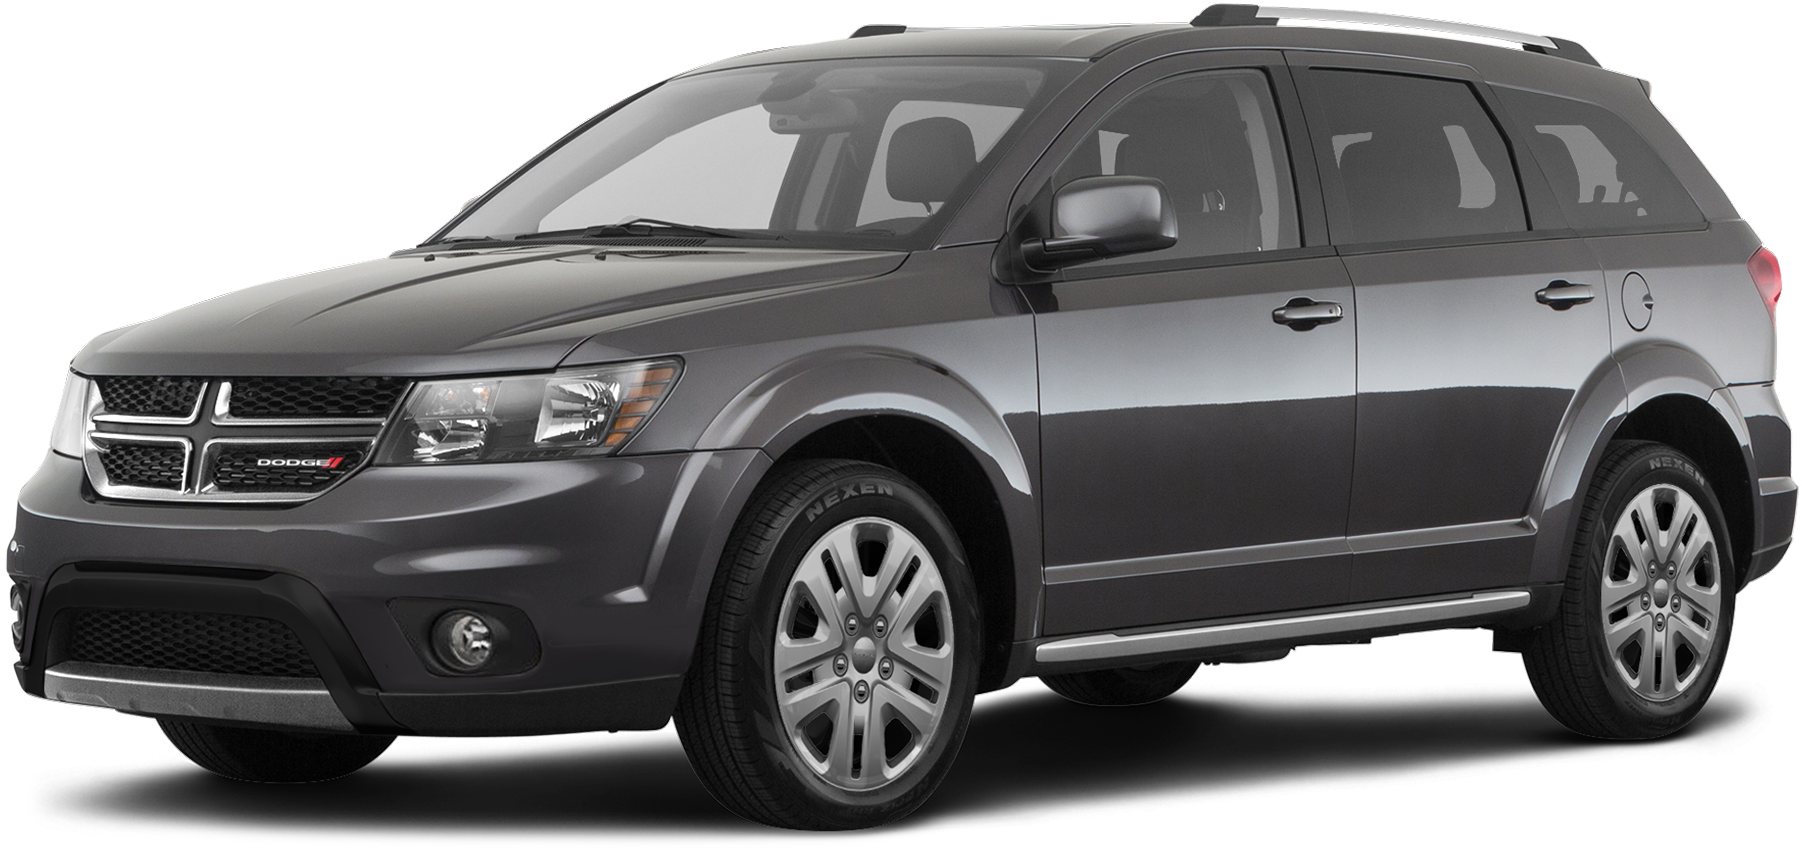 Review & Compare Dodge Journey at Larry H. Miller Dodge Ram Peoria